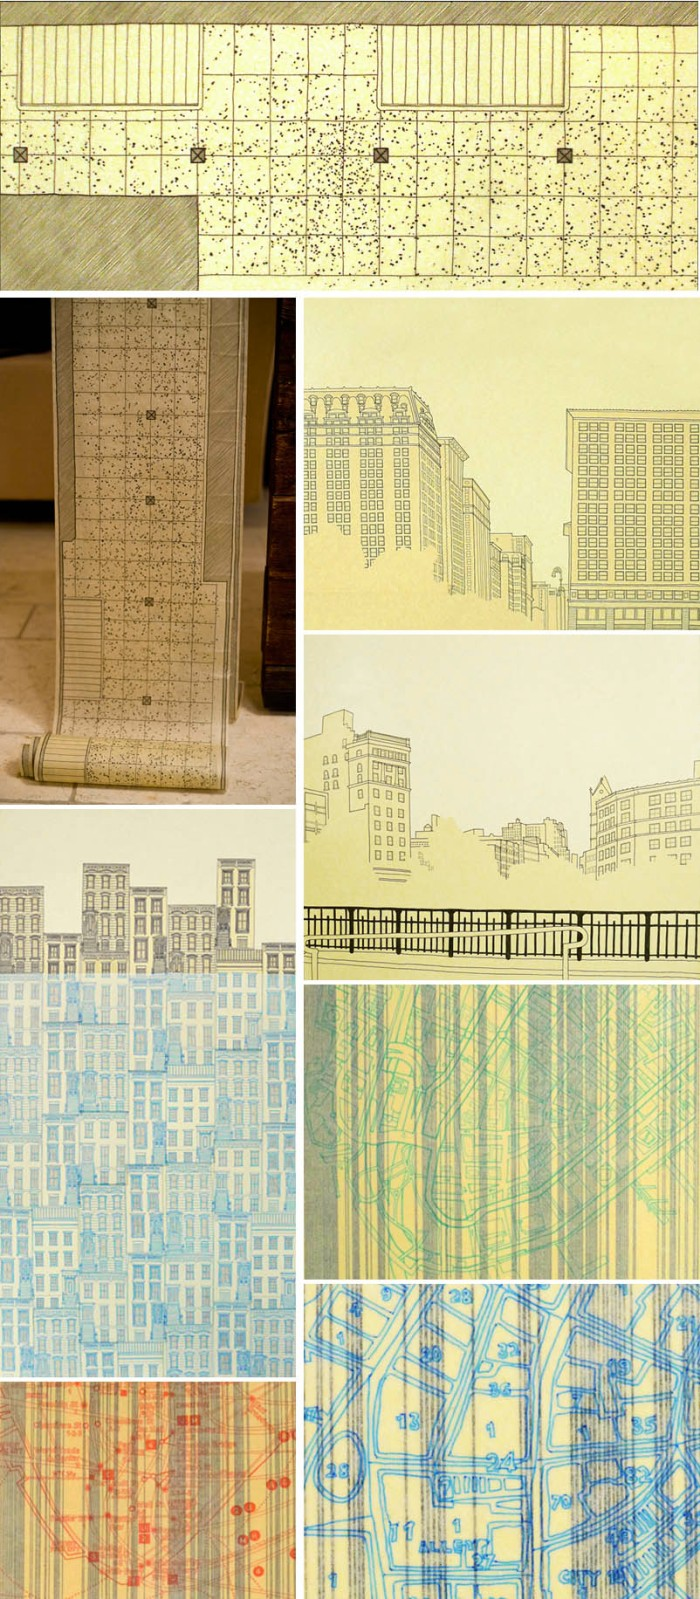 NYC, Drawings, Union Square, Architectural style drawings, contemporary art